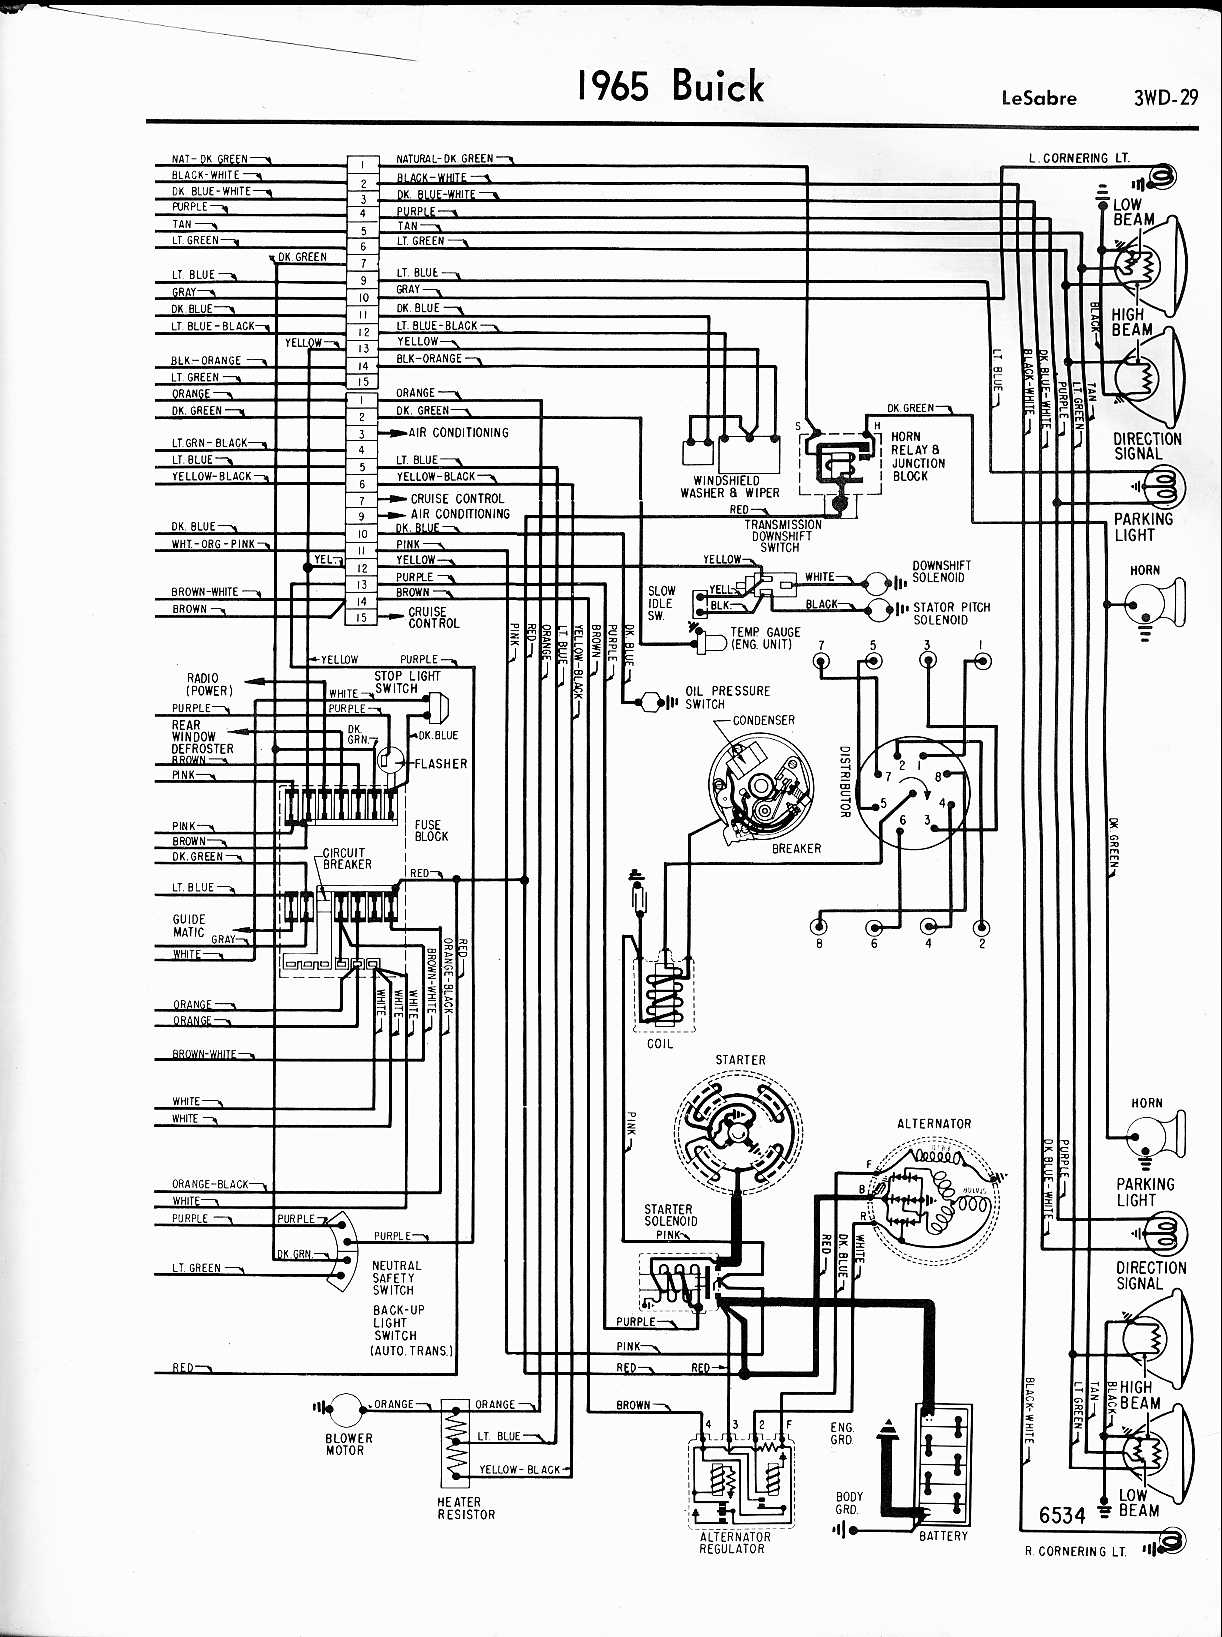 97 Buick Wiring Diagram Free Picture Schematic -2011 Chevy Silverado Fuse  Box Problems | Begeboy Wiring Diagram SourceBegeboy Wiring Diagram Source